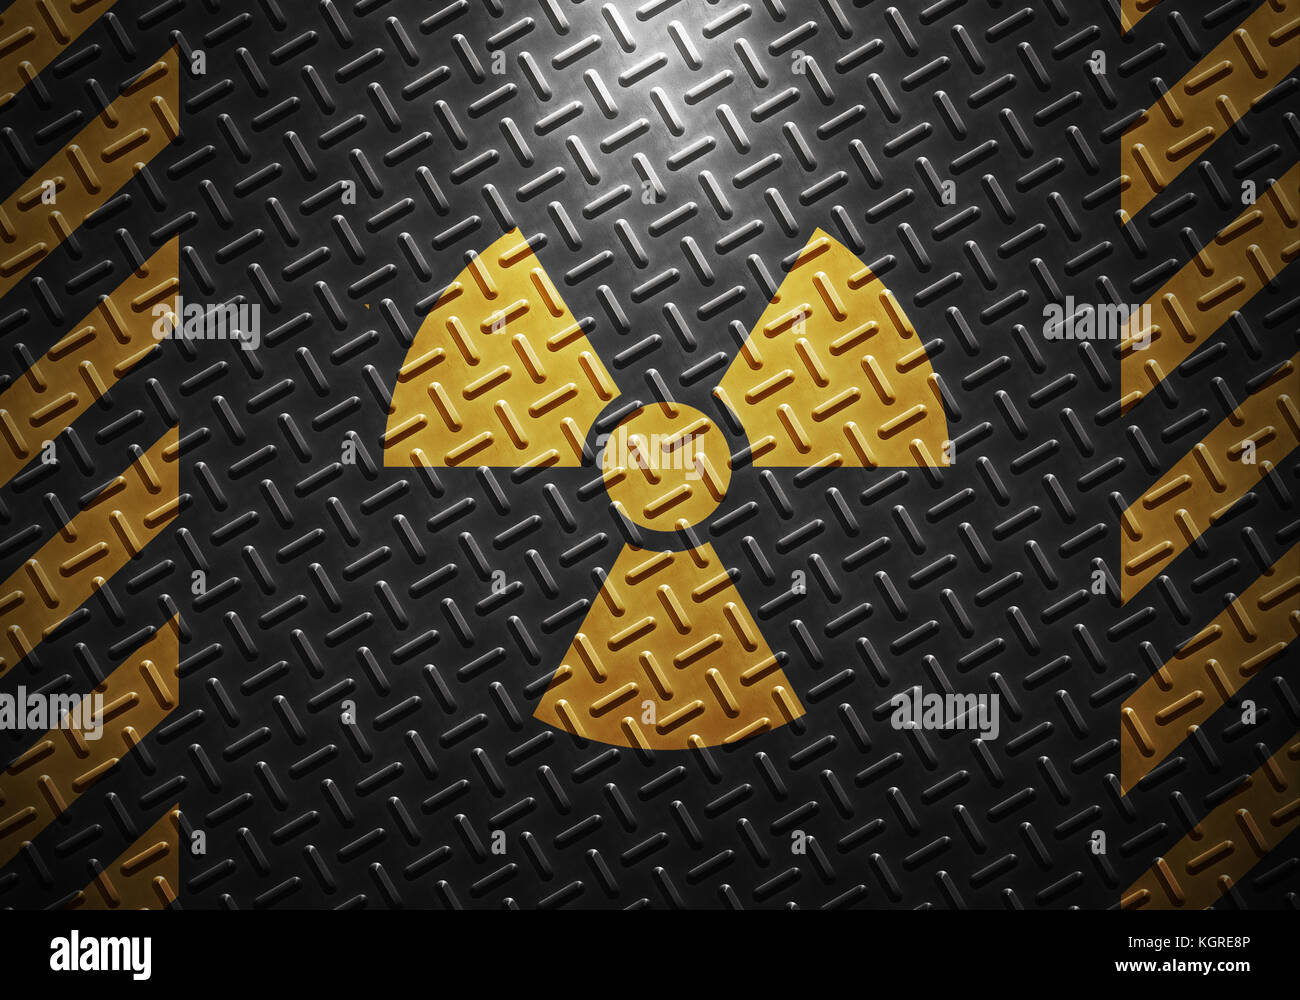 Abstract grey metal sheet texture with yellow caution tape and radiation warning sign, material design for background, - Stock Image